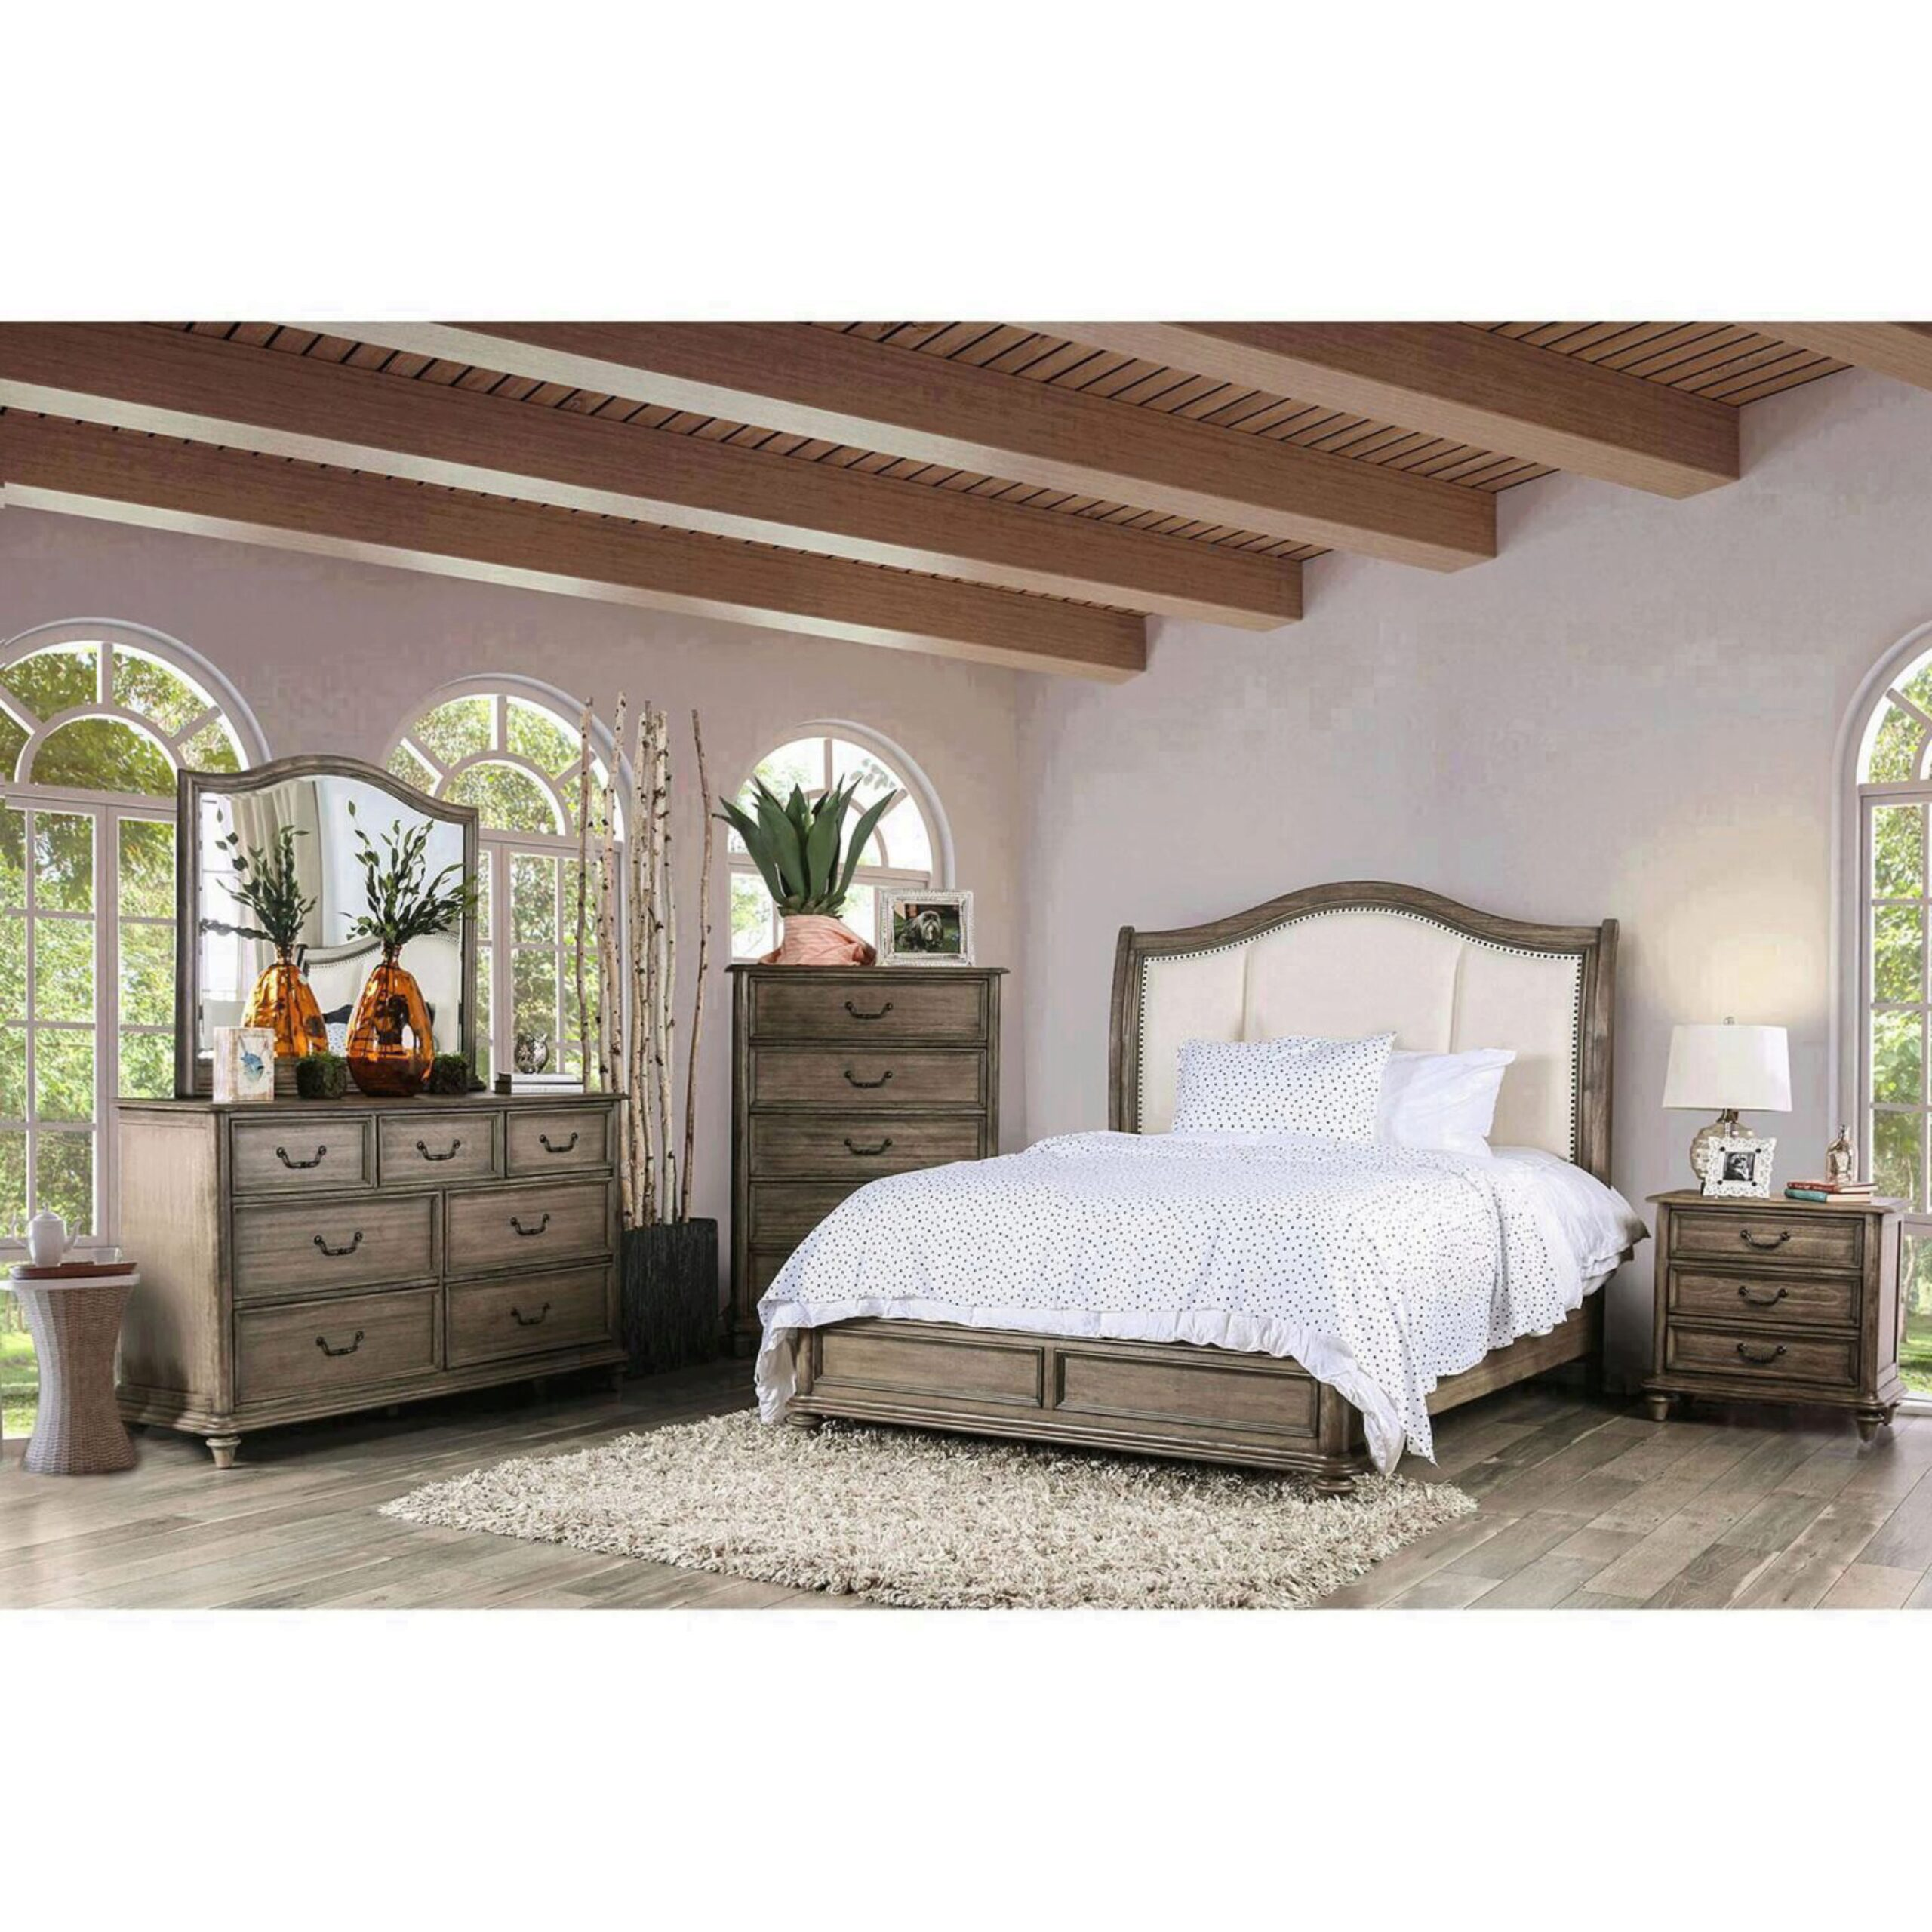 Rustic Fabric Upholstery Queen Bedroom Set 5 W Chest Belgrade Ii Furniture Of America Cm7612q 5pc Chest